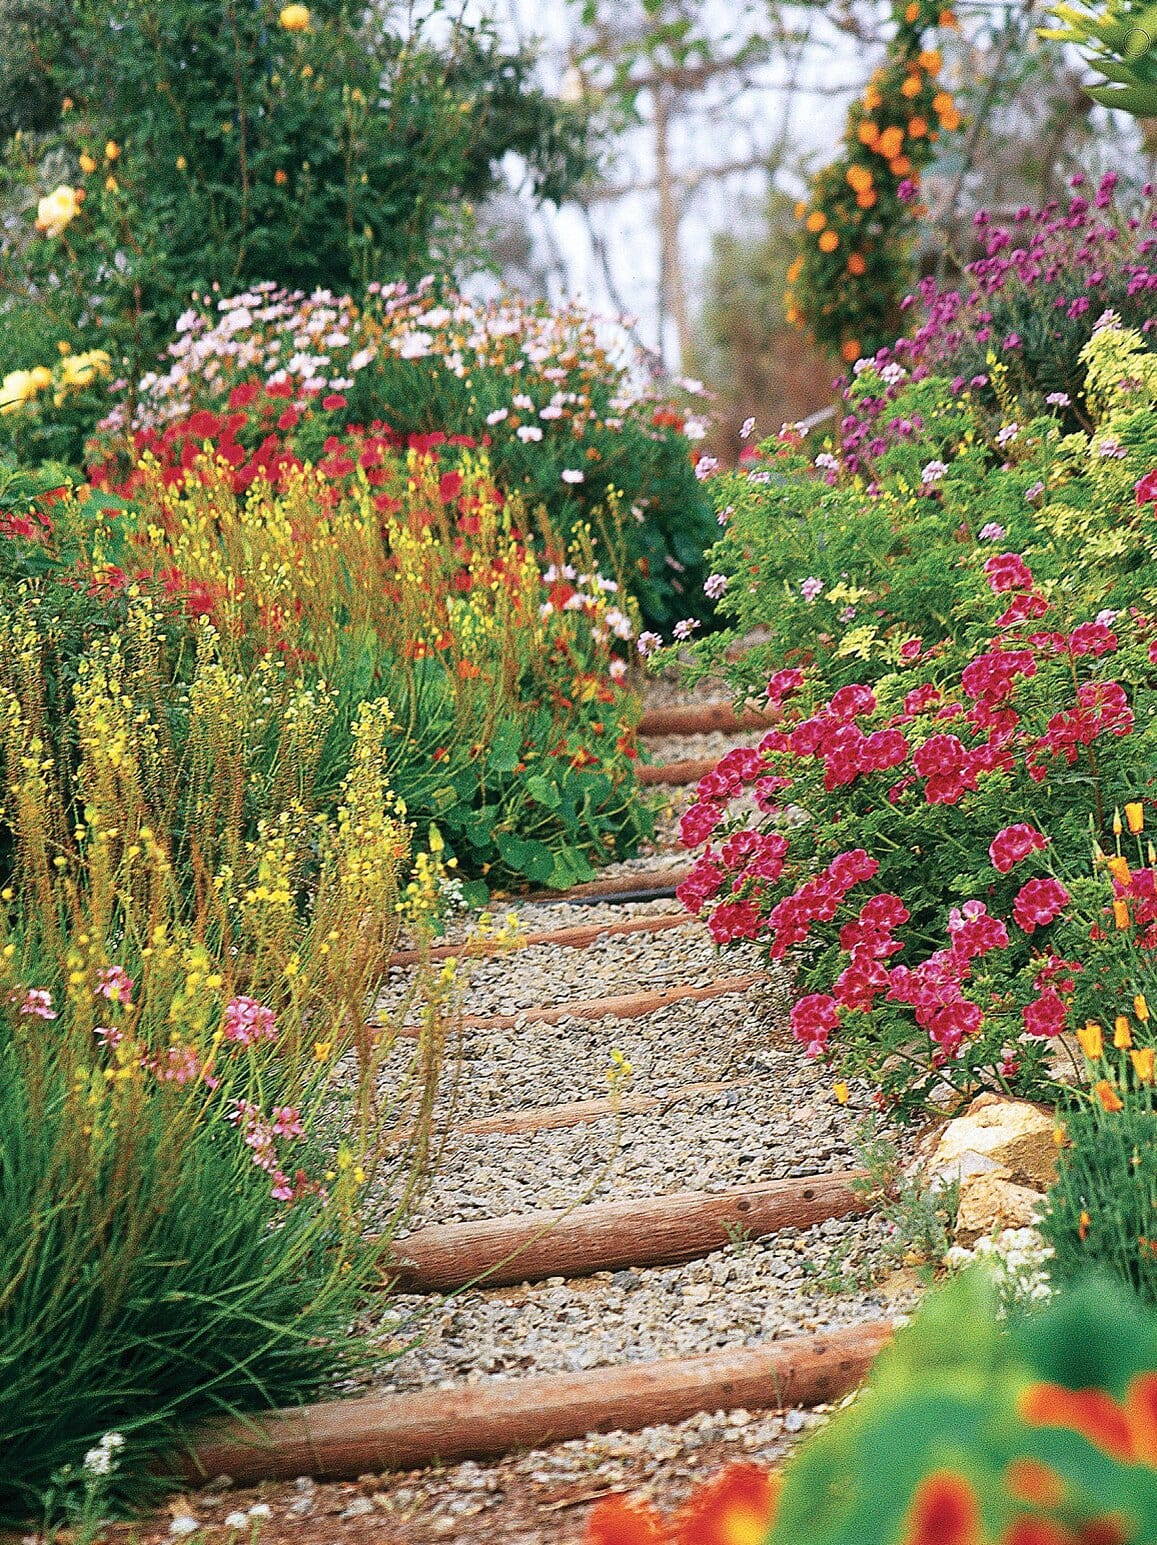 Best cottage style garden ideas for landscaping #6